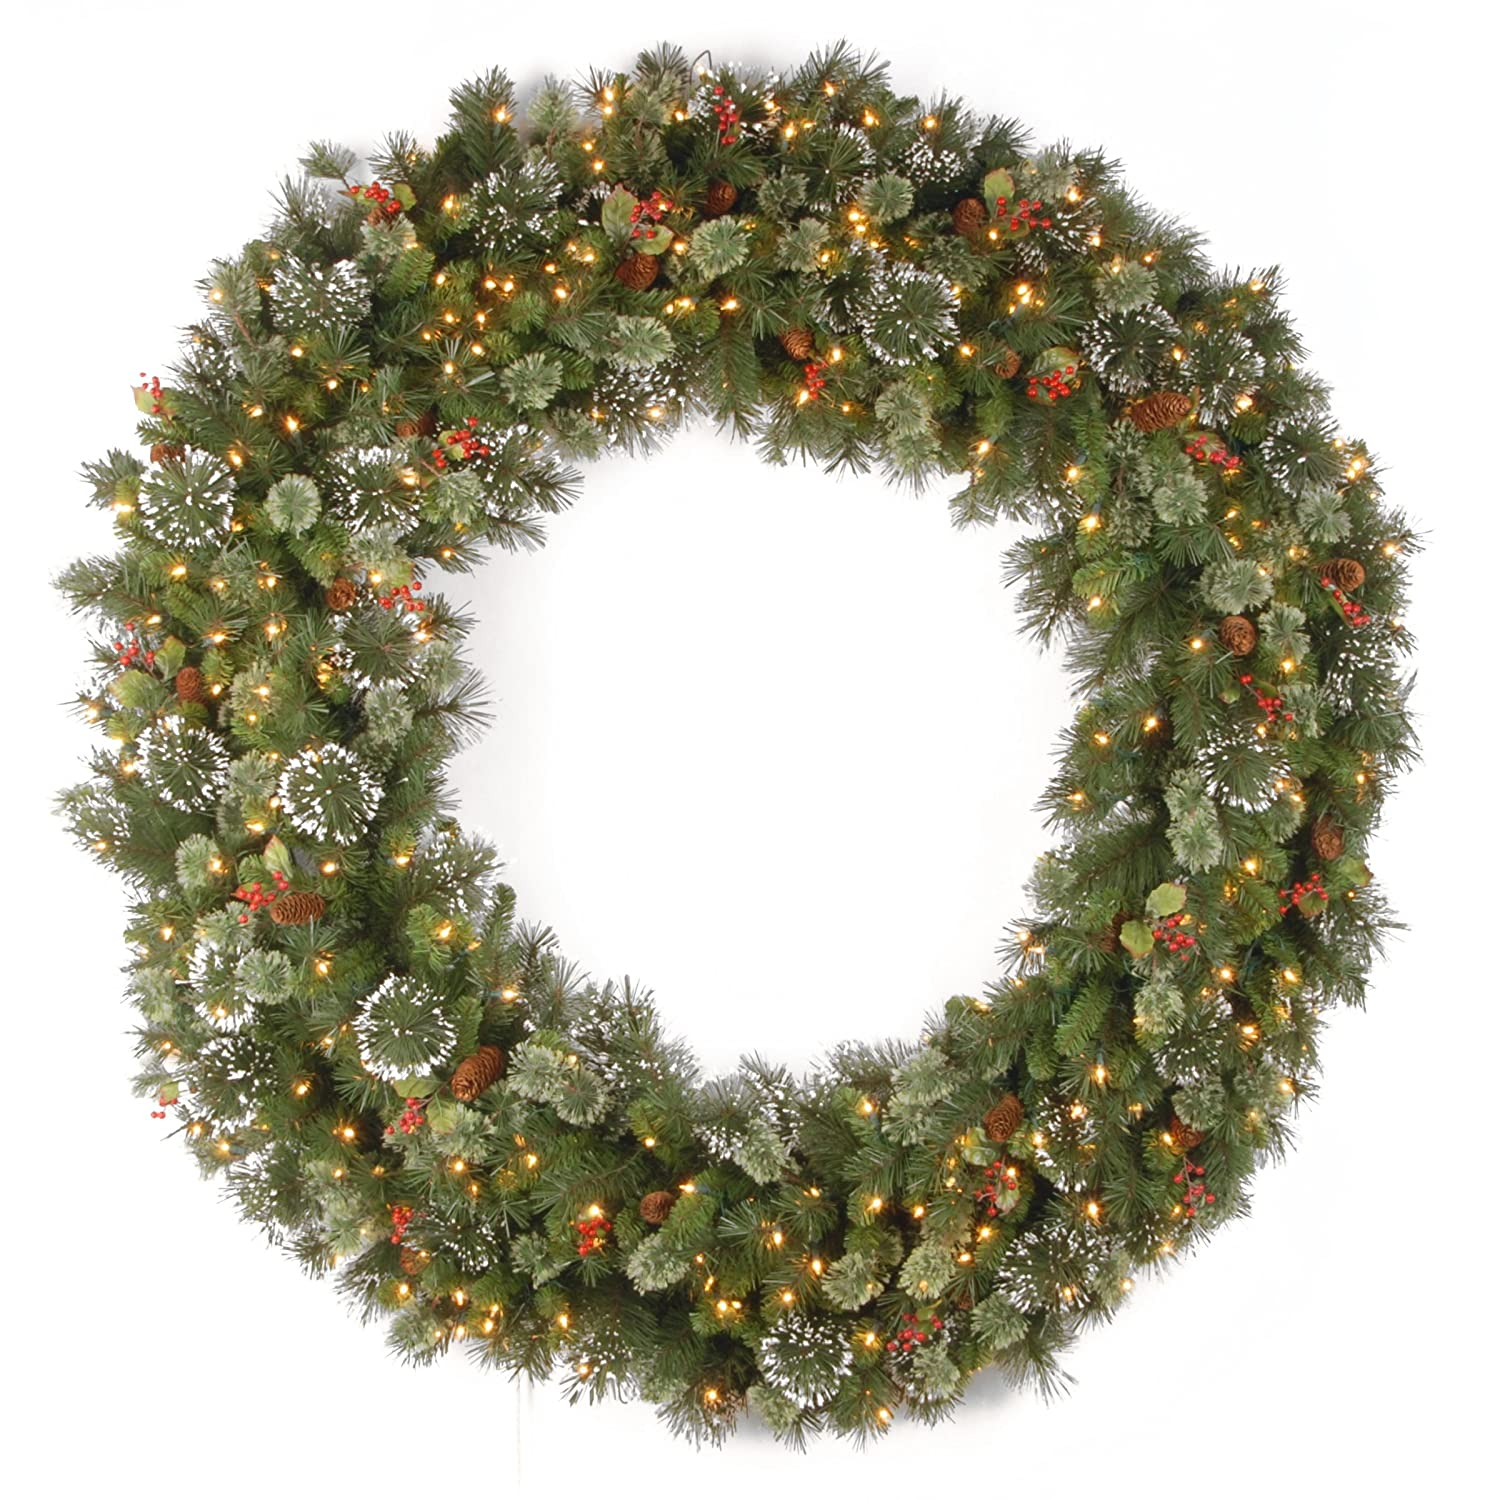 National Tree Wintry Pine Wreath with Cones, Red Berries and Snowflakes, 60-Inch, 300 Clear Lights